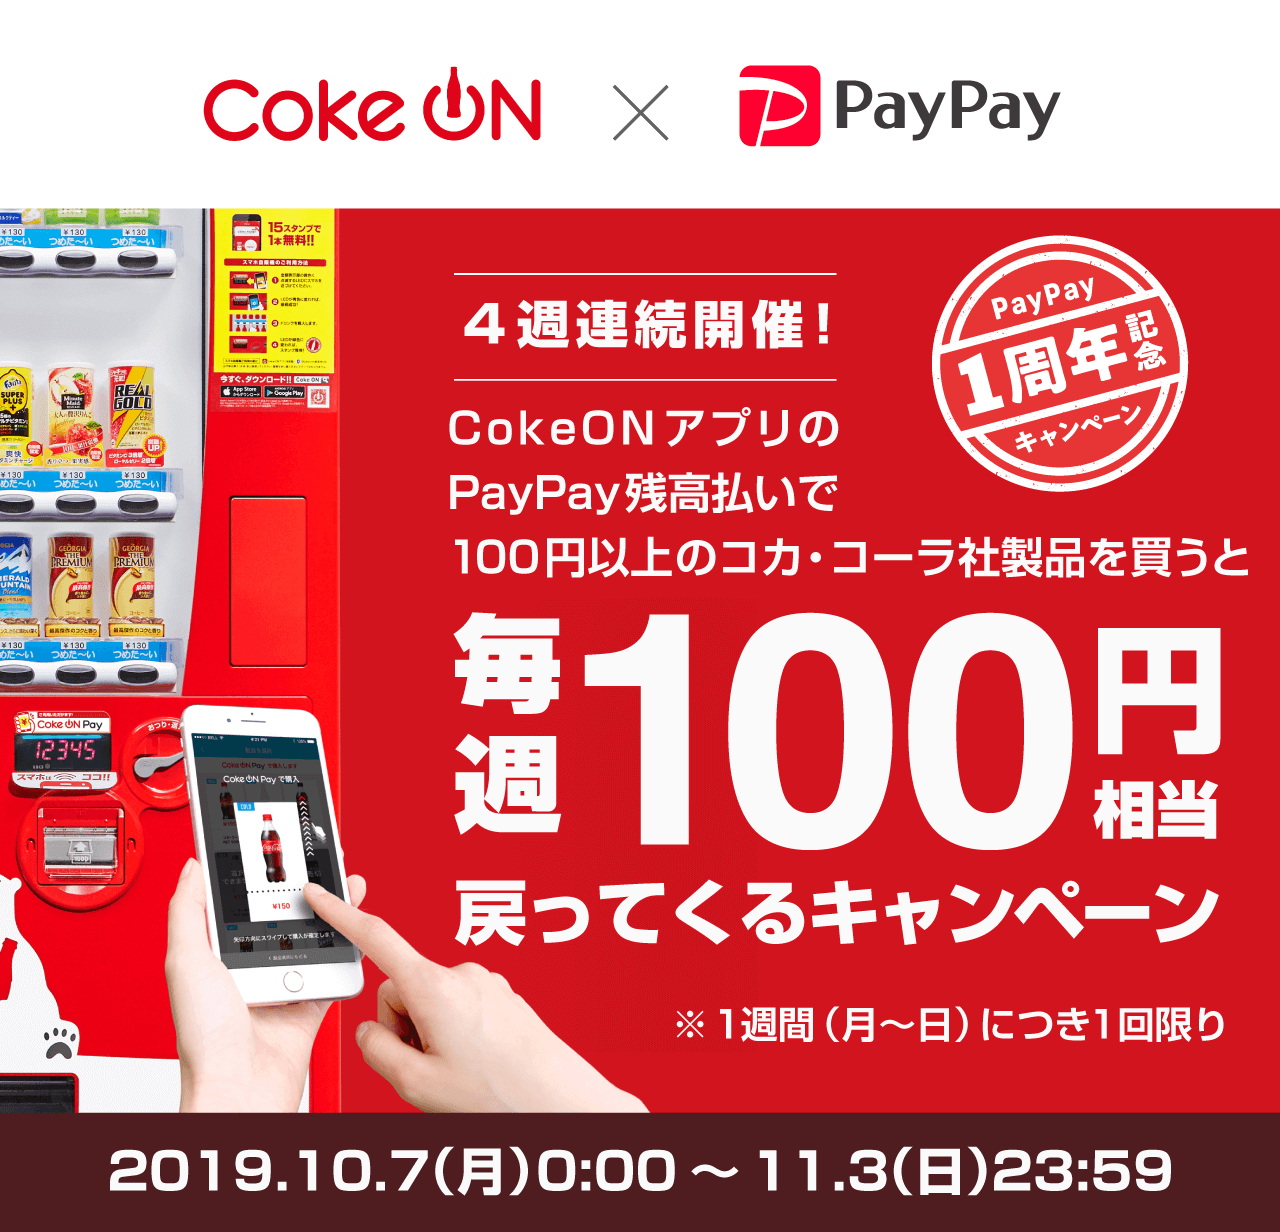 https://image.paypay.ne.jp/page/event/cokeon/images/img_mv_01.png